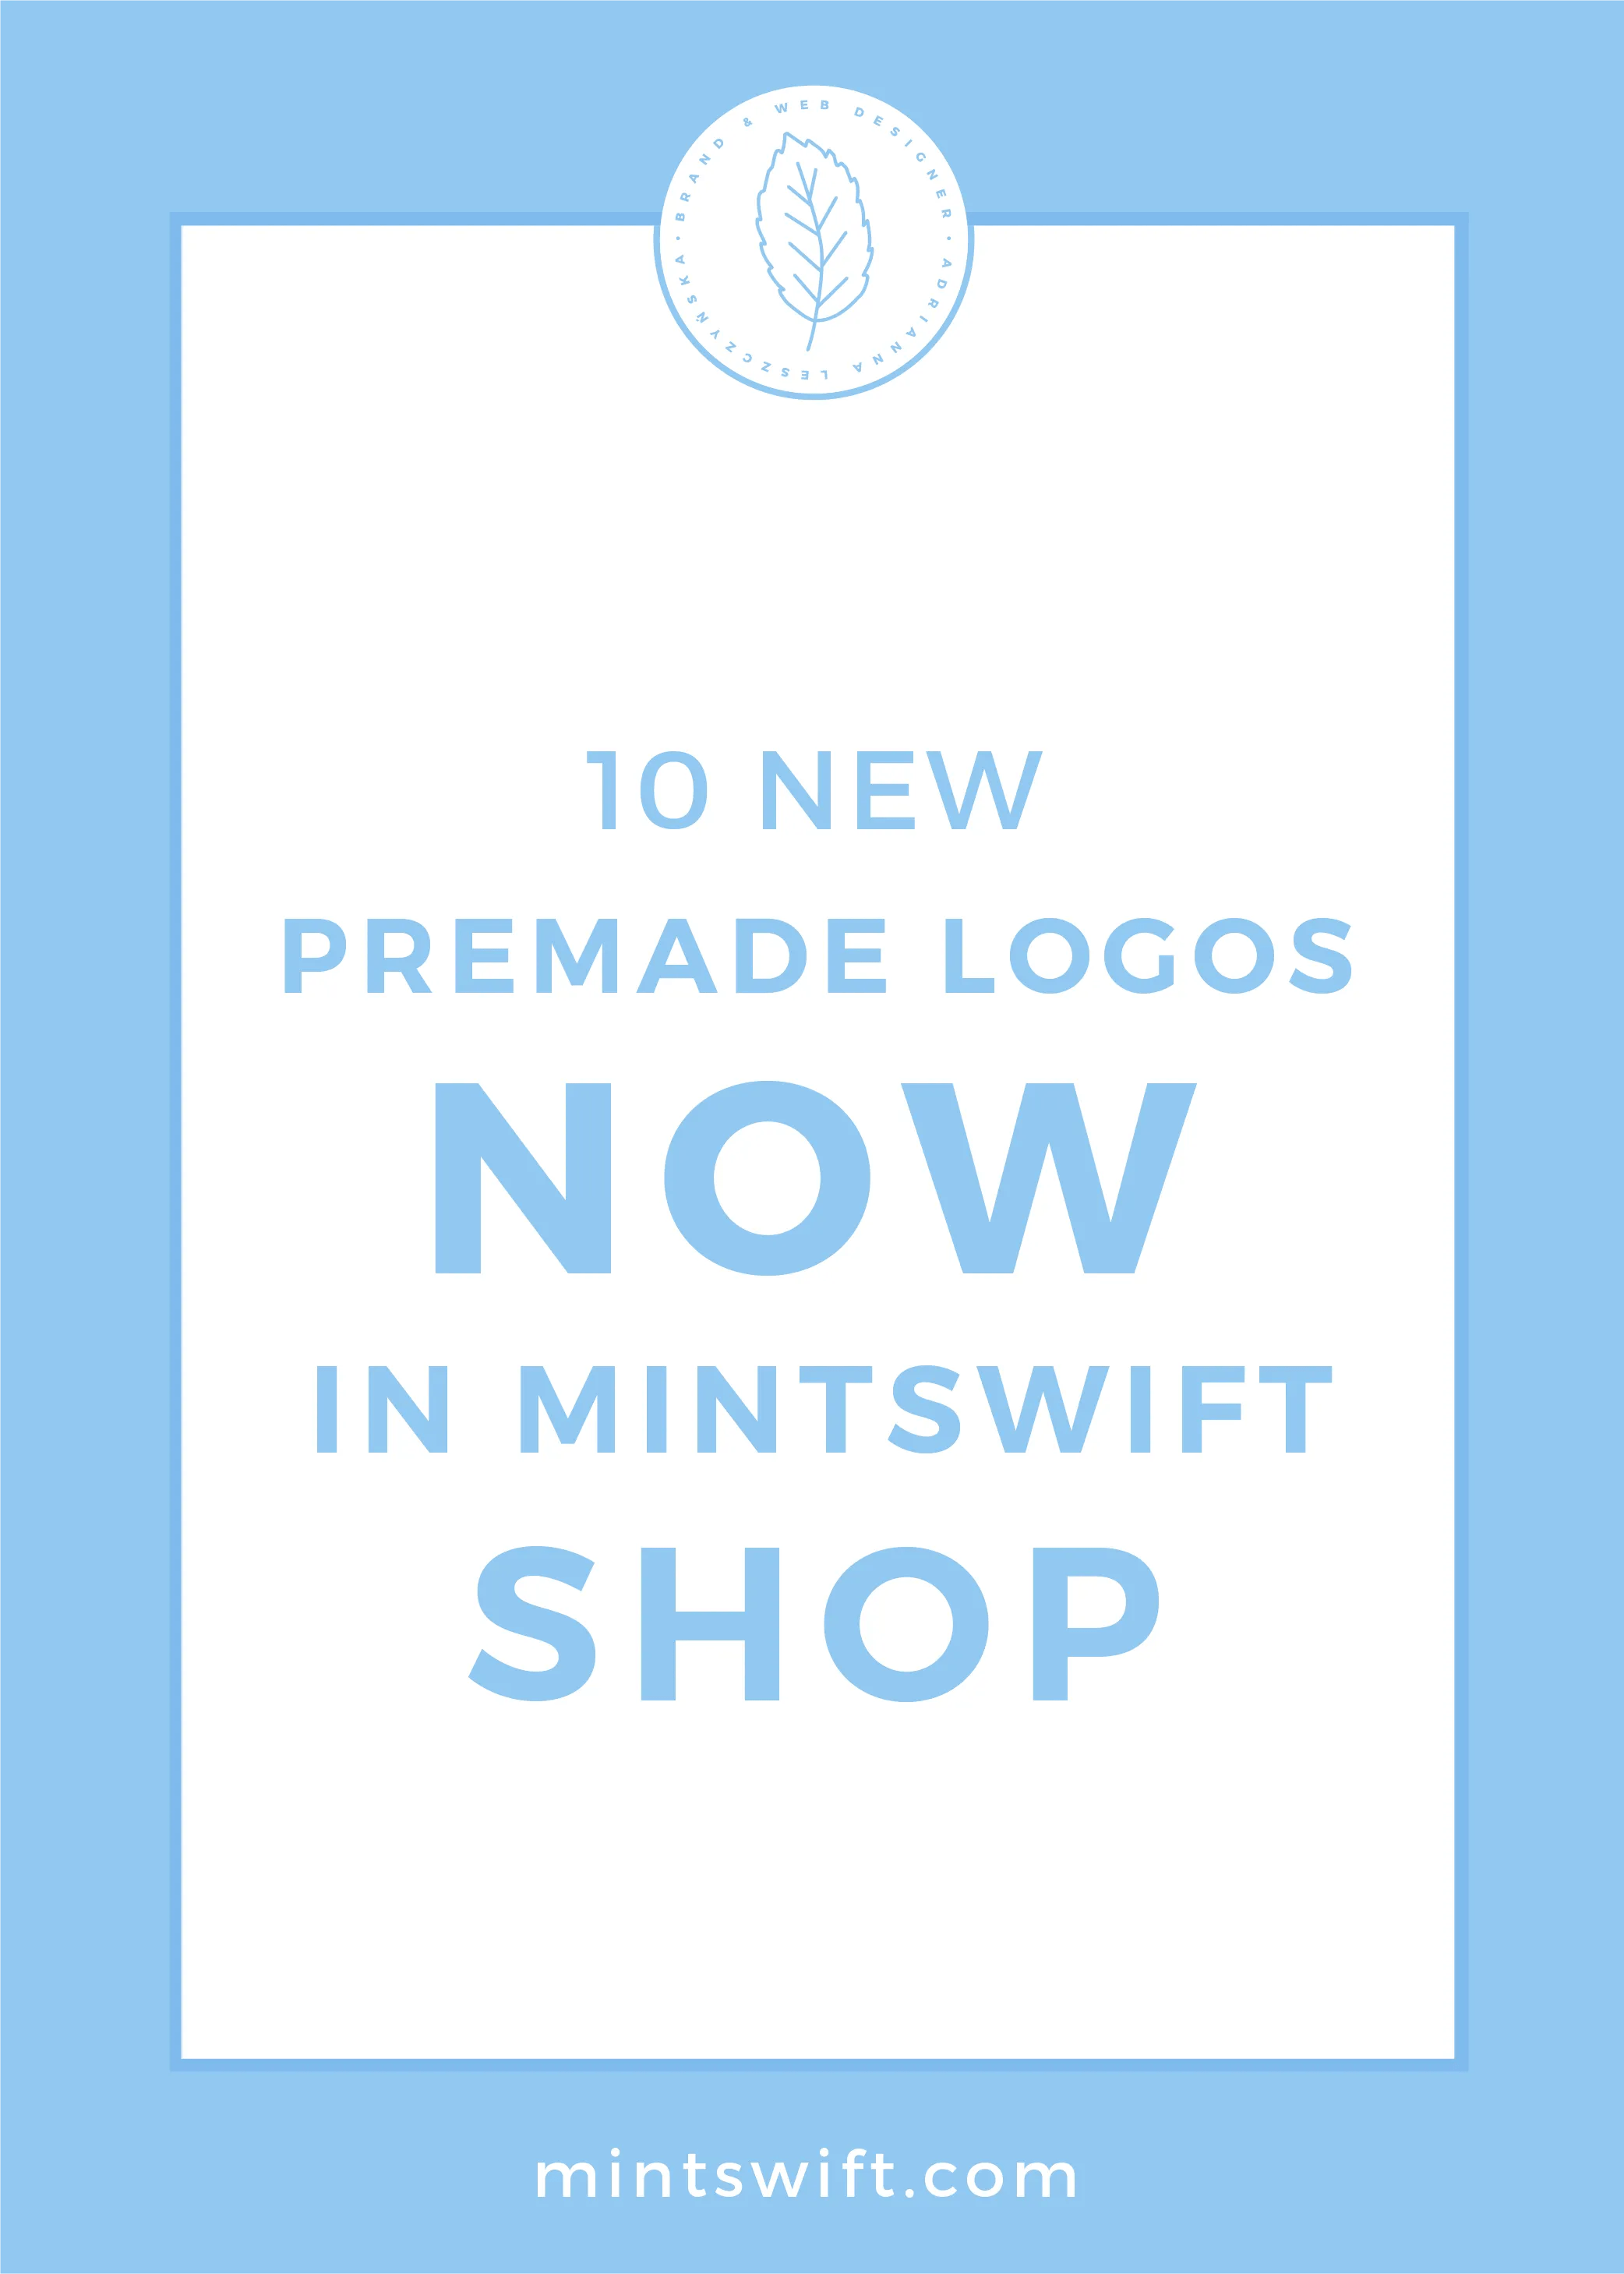 10 New Premade Logos Now In MintSwift Shop by MintSwift